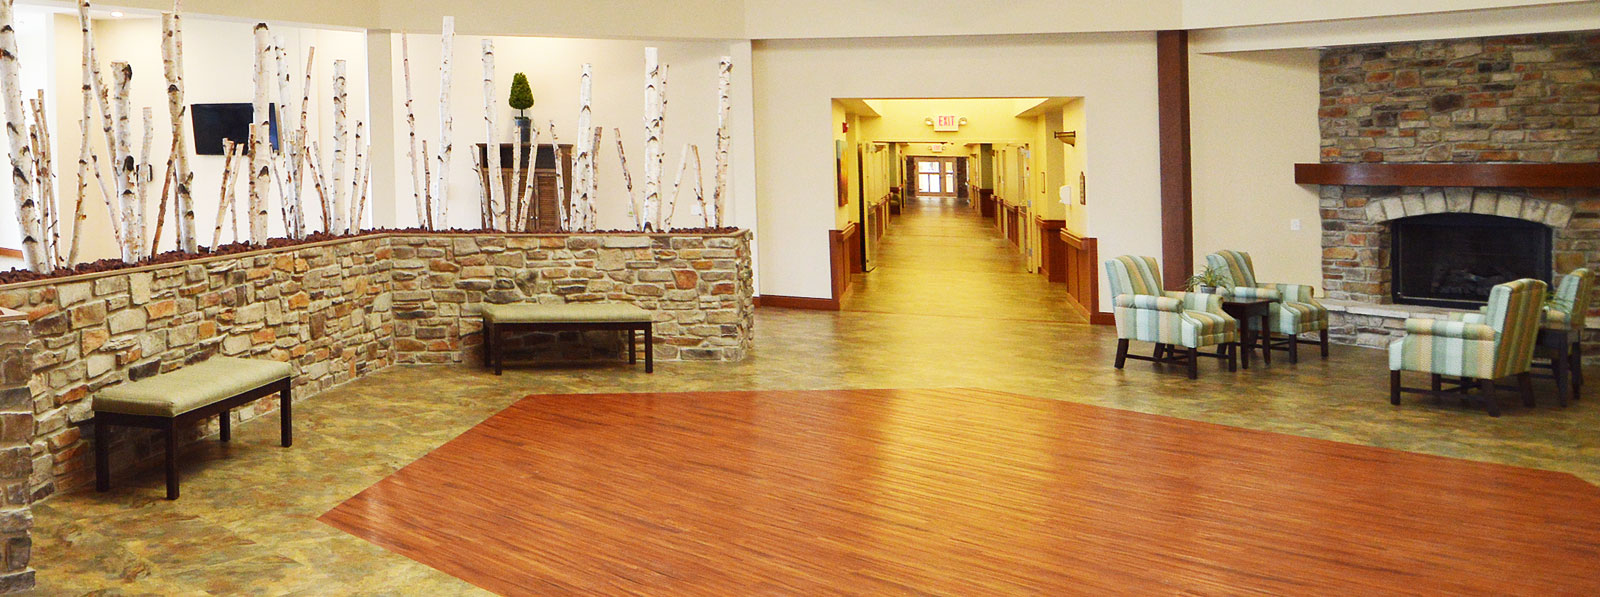 Silverstone Place Skilled Nursing